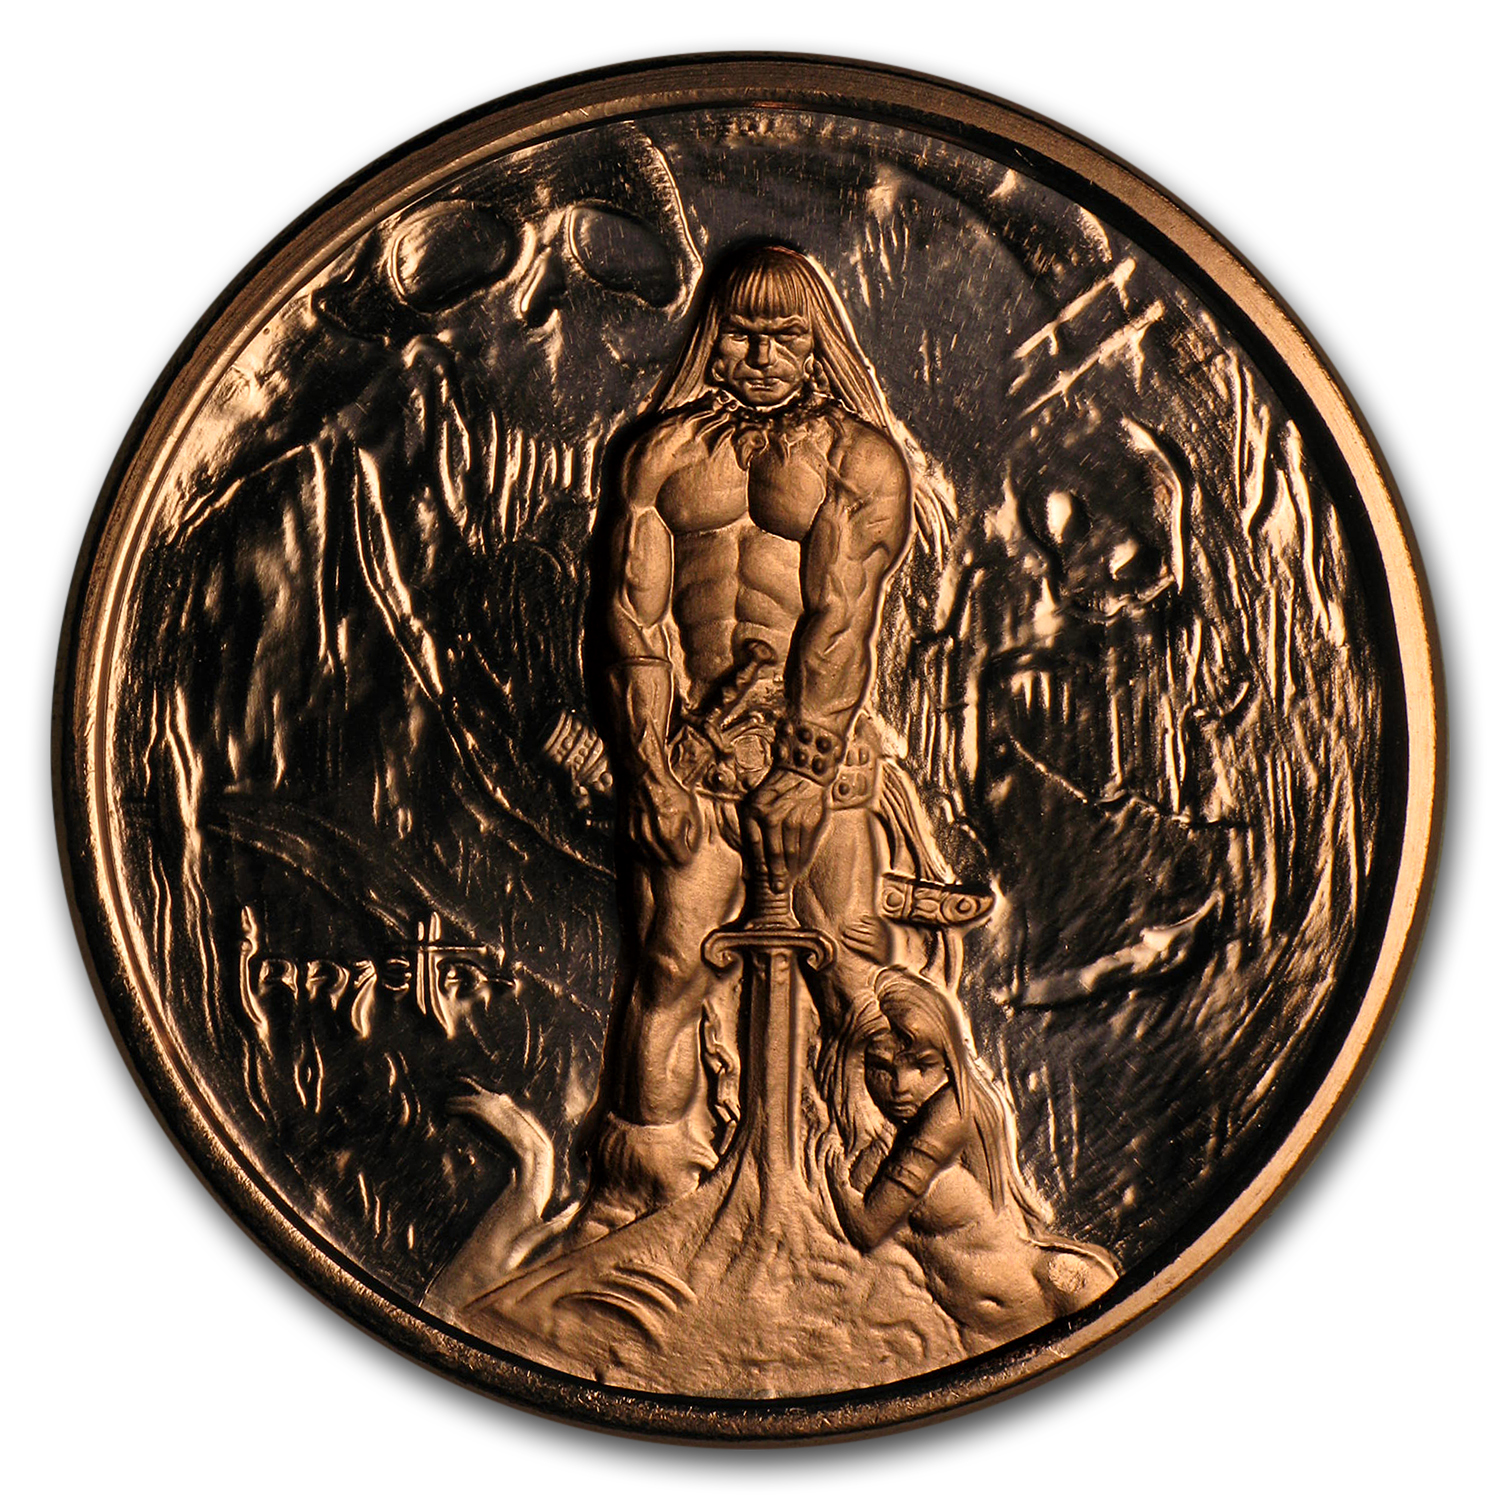 1 oz Copper Round - Frank Frazetta (Barbarian)